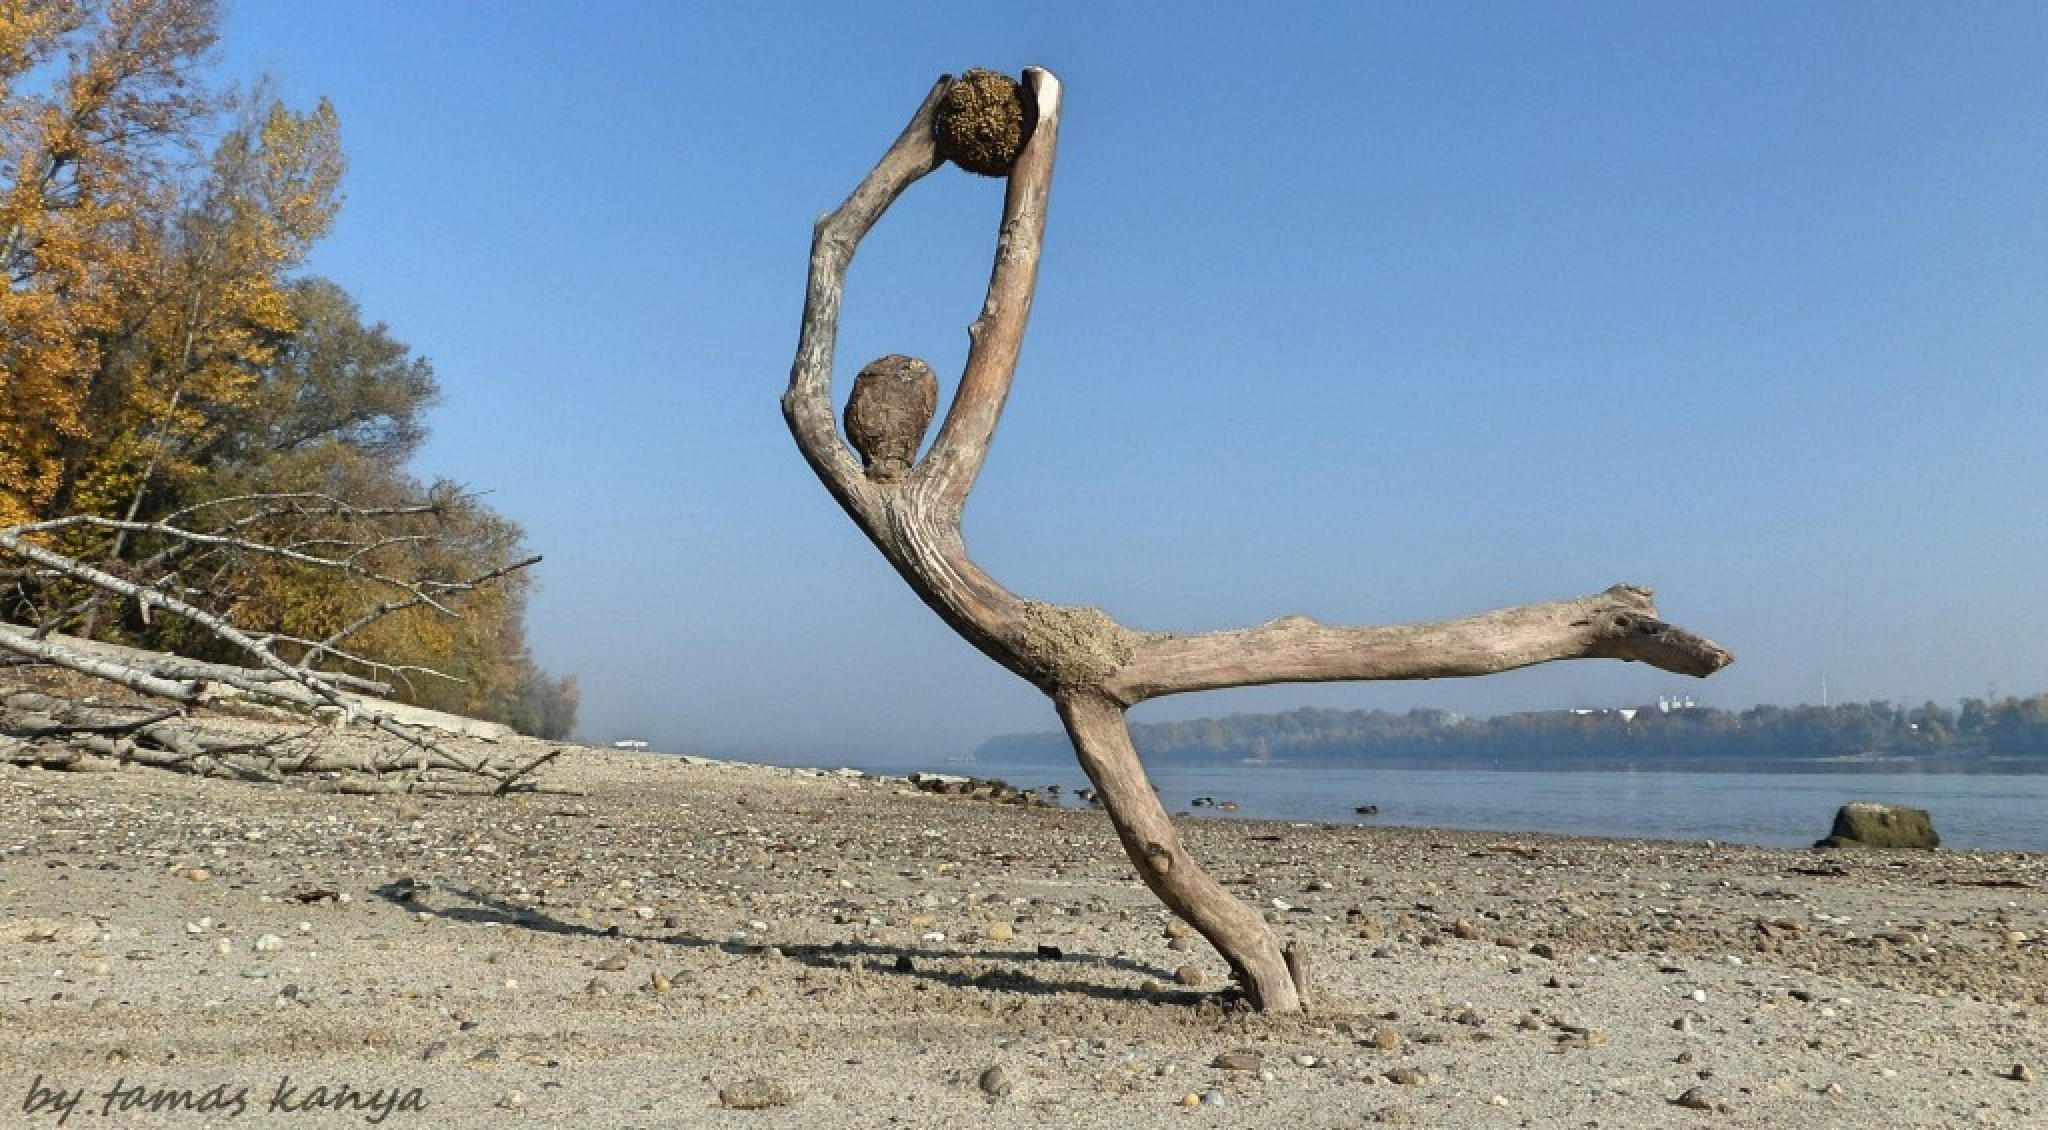 Driftwood art from Hungary by Tamas Kanya by Tamas Kanya